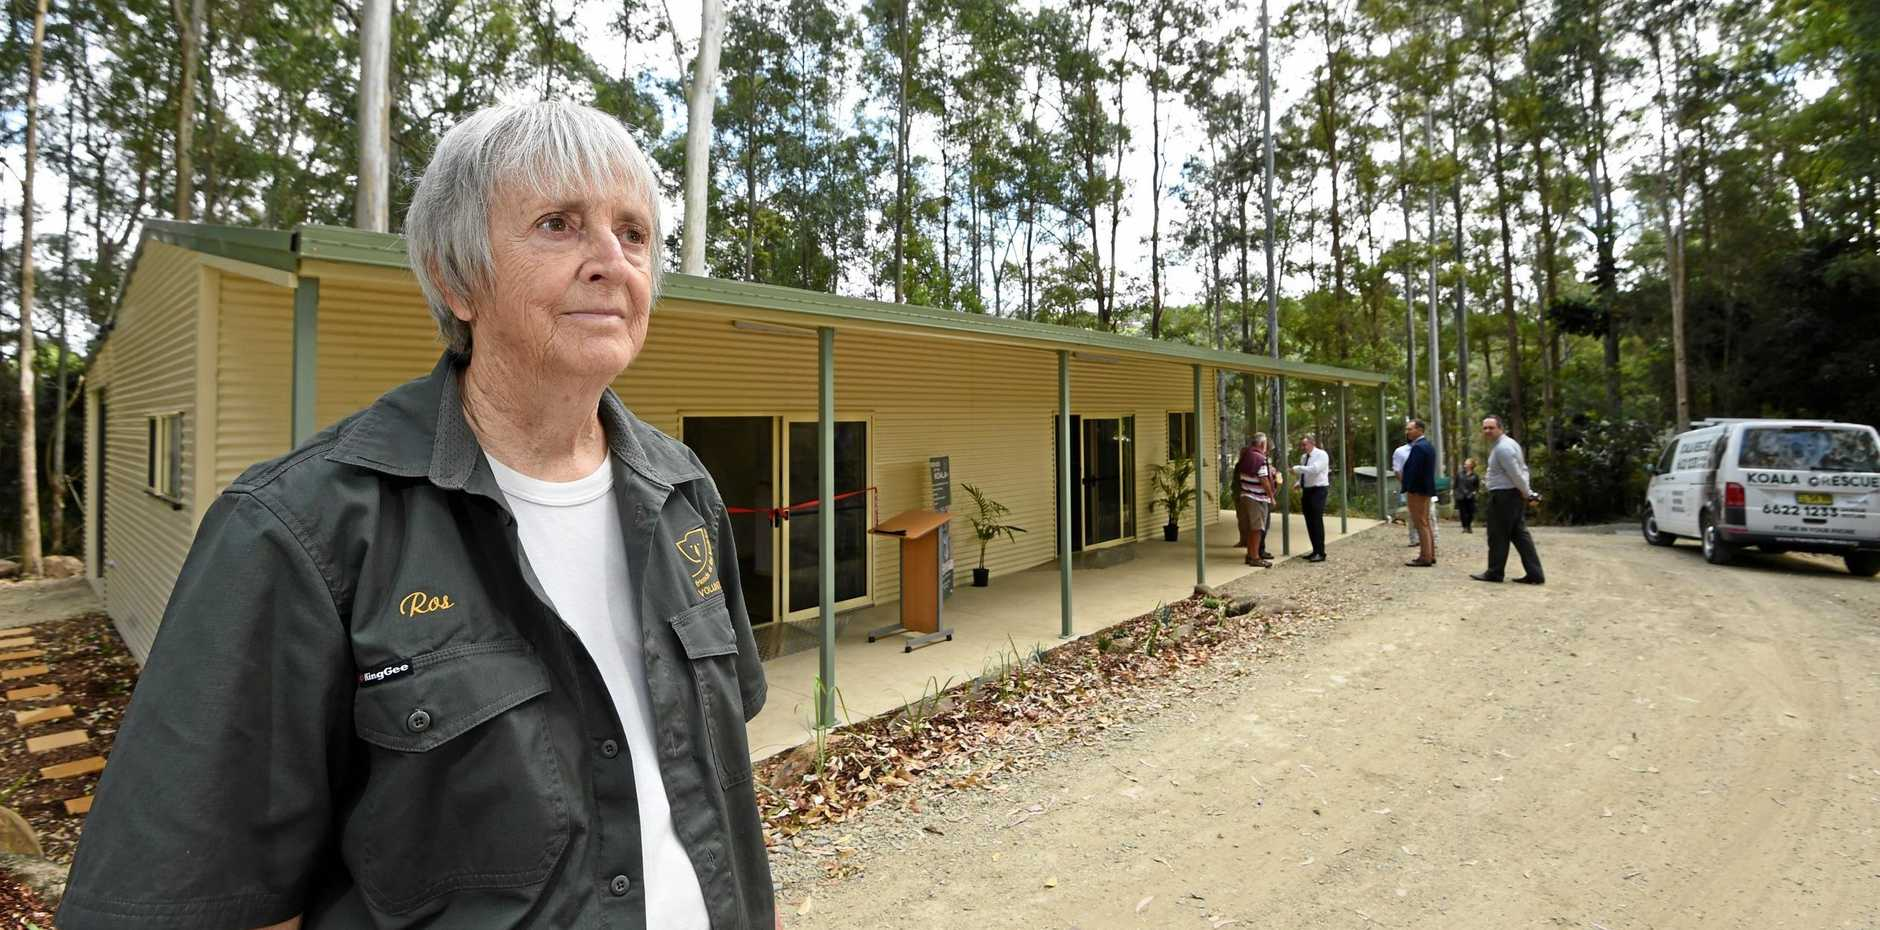 WILDLIFE: Roslyn Irwin at the opening of the FRiends of the Koala's new facilities in 2017.